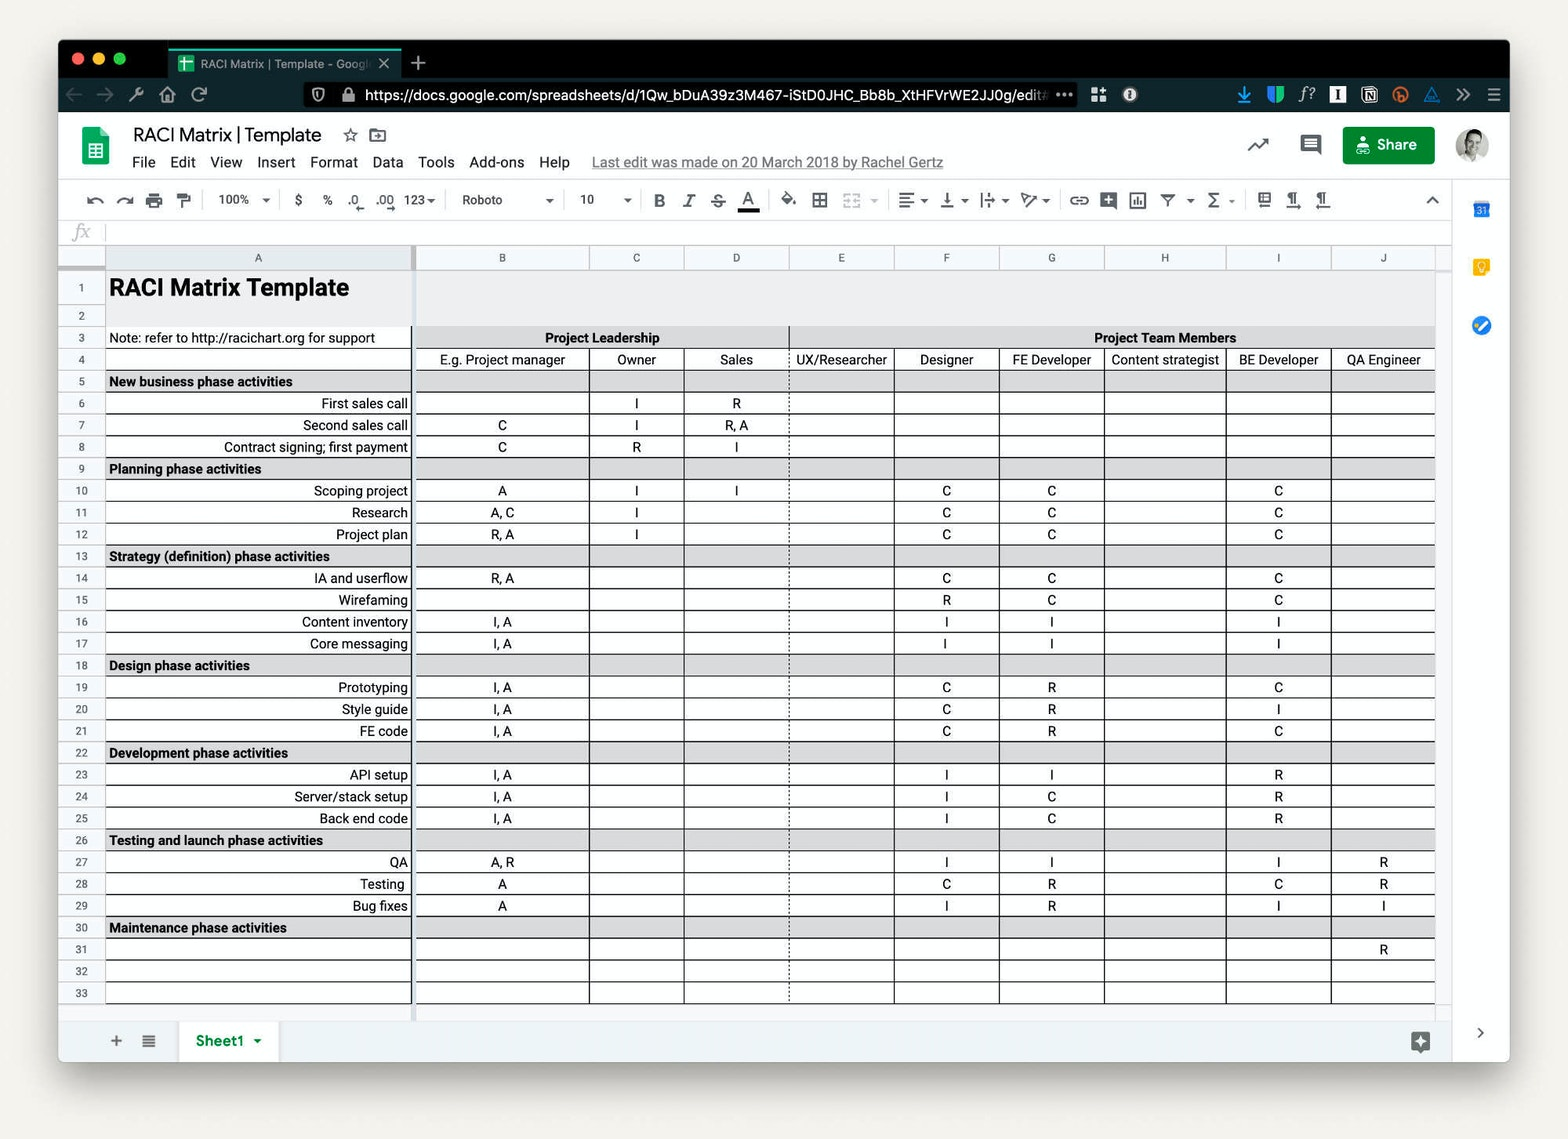 Screenshot of an old-style RACI spreadsheet